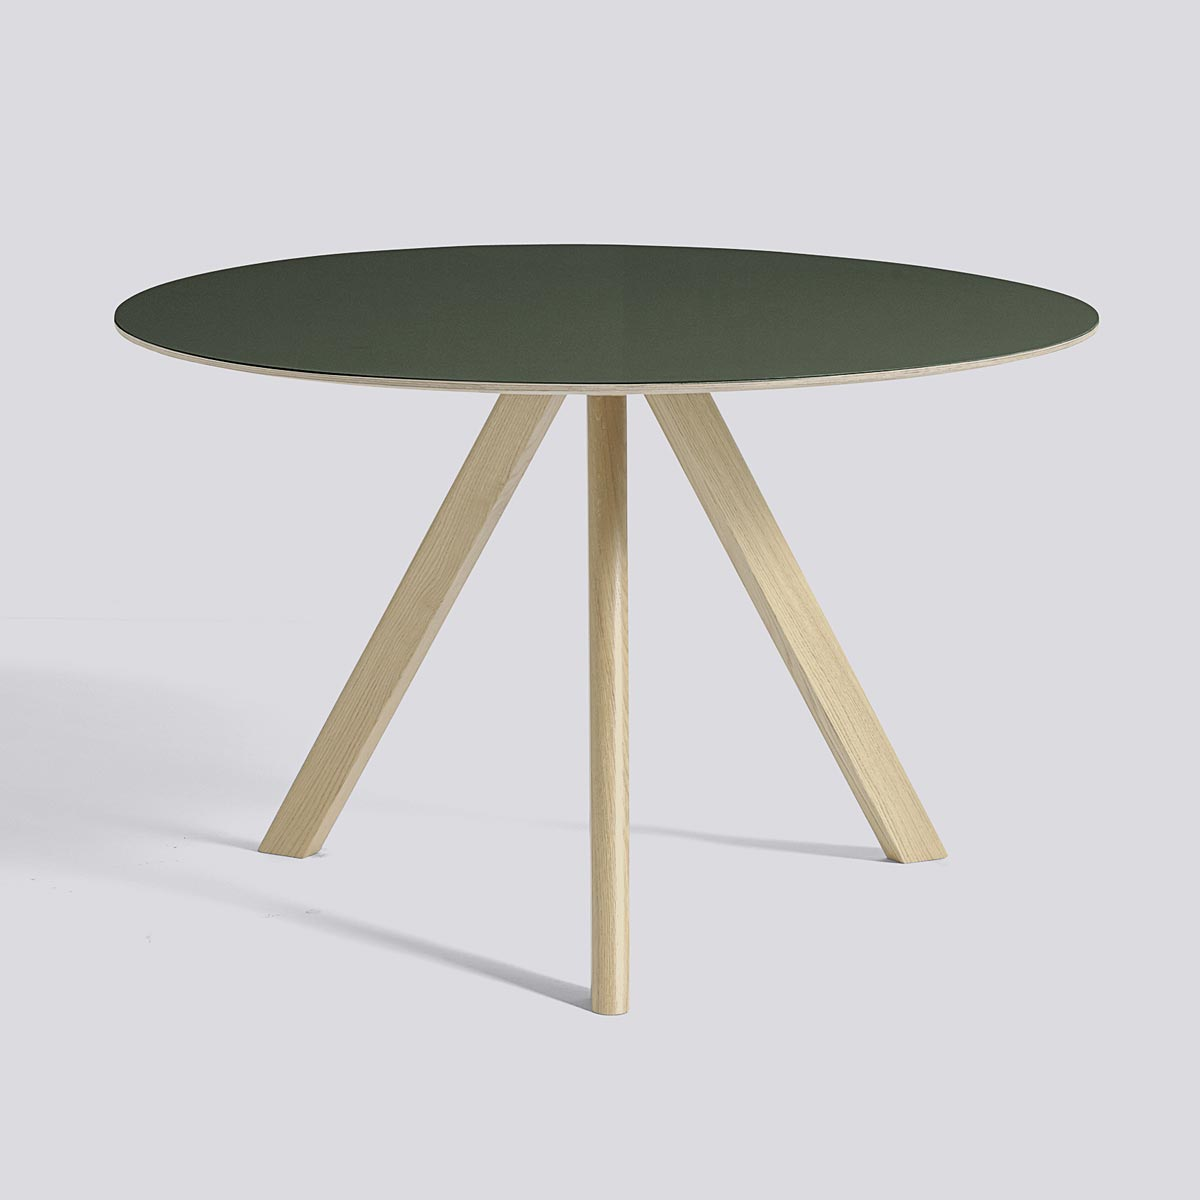 CPN Table 20 120 Green Lacquered Oak - HAY